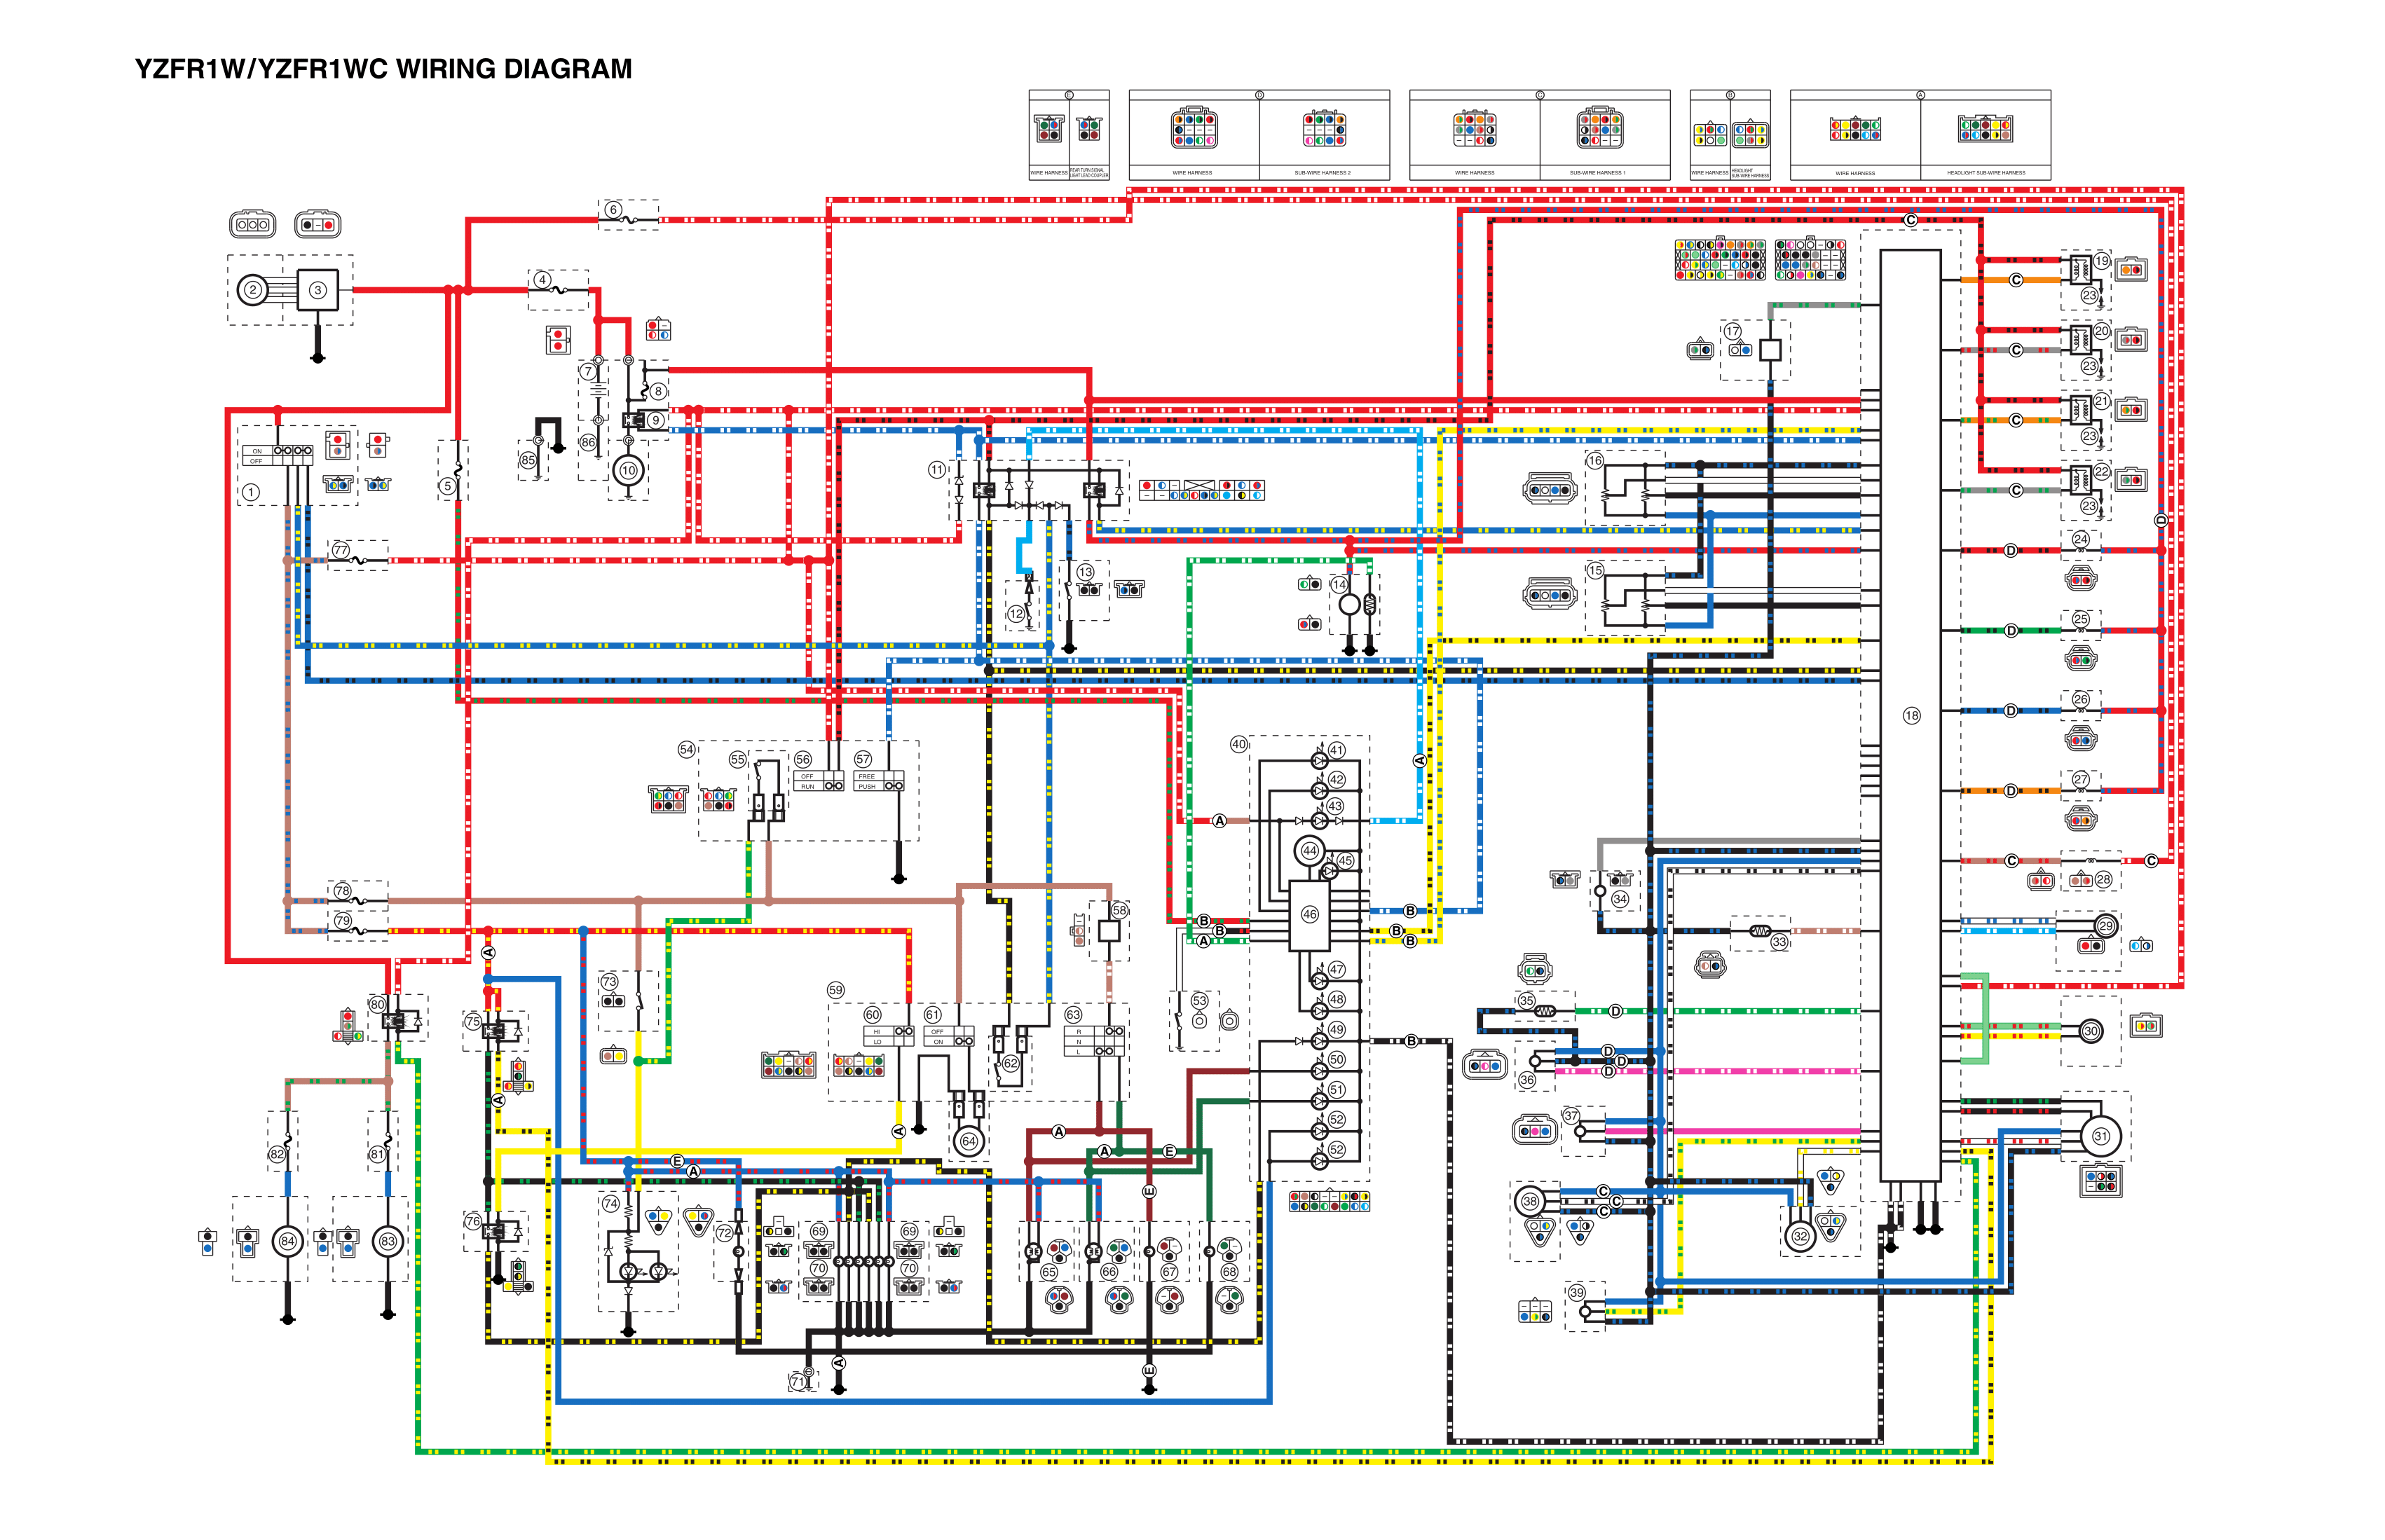 1999 yamaha yzf r1 wiring diagram wiring diagrams #1